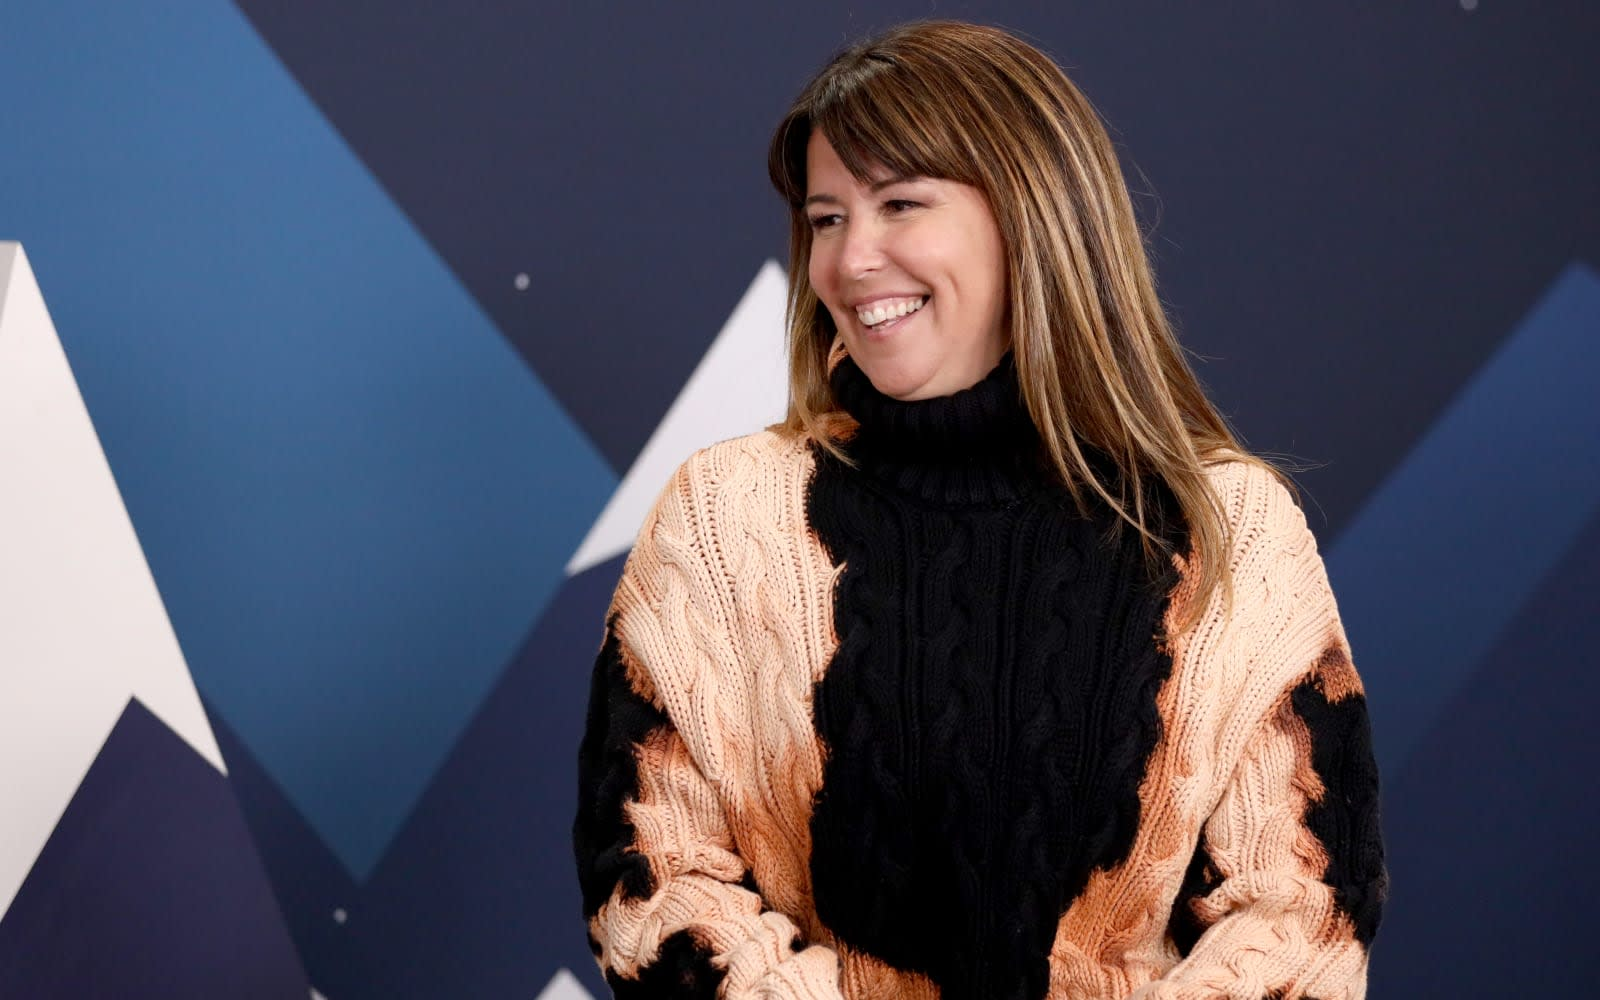 Netflix signs overall deal with 'Wonder Woman' director Patty Jenkins